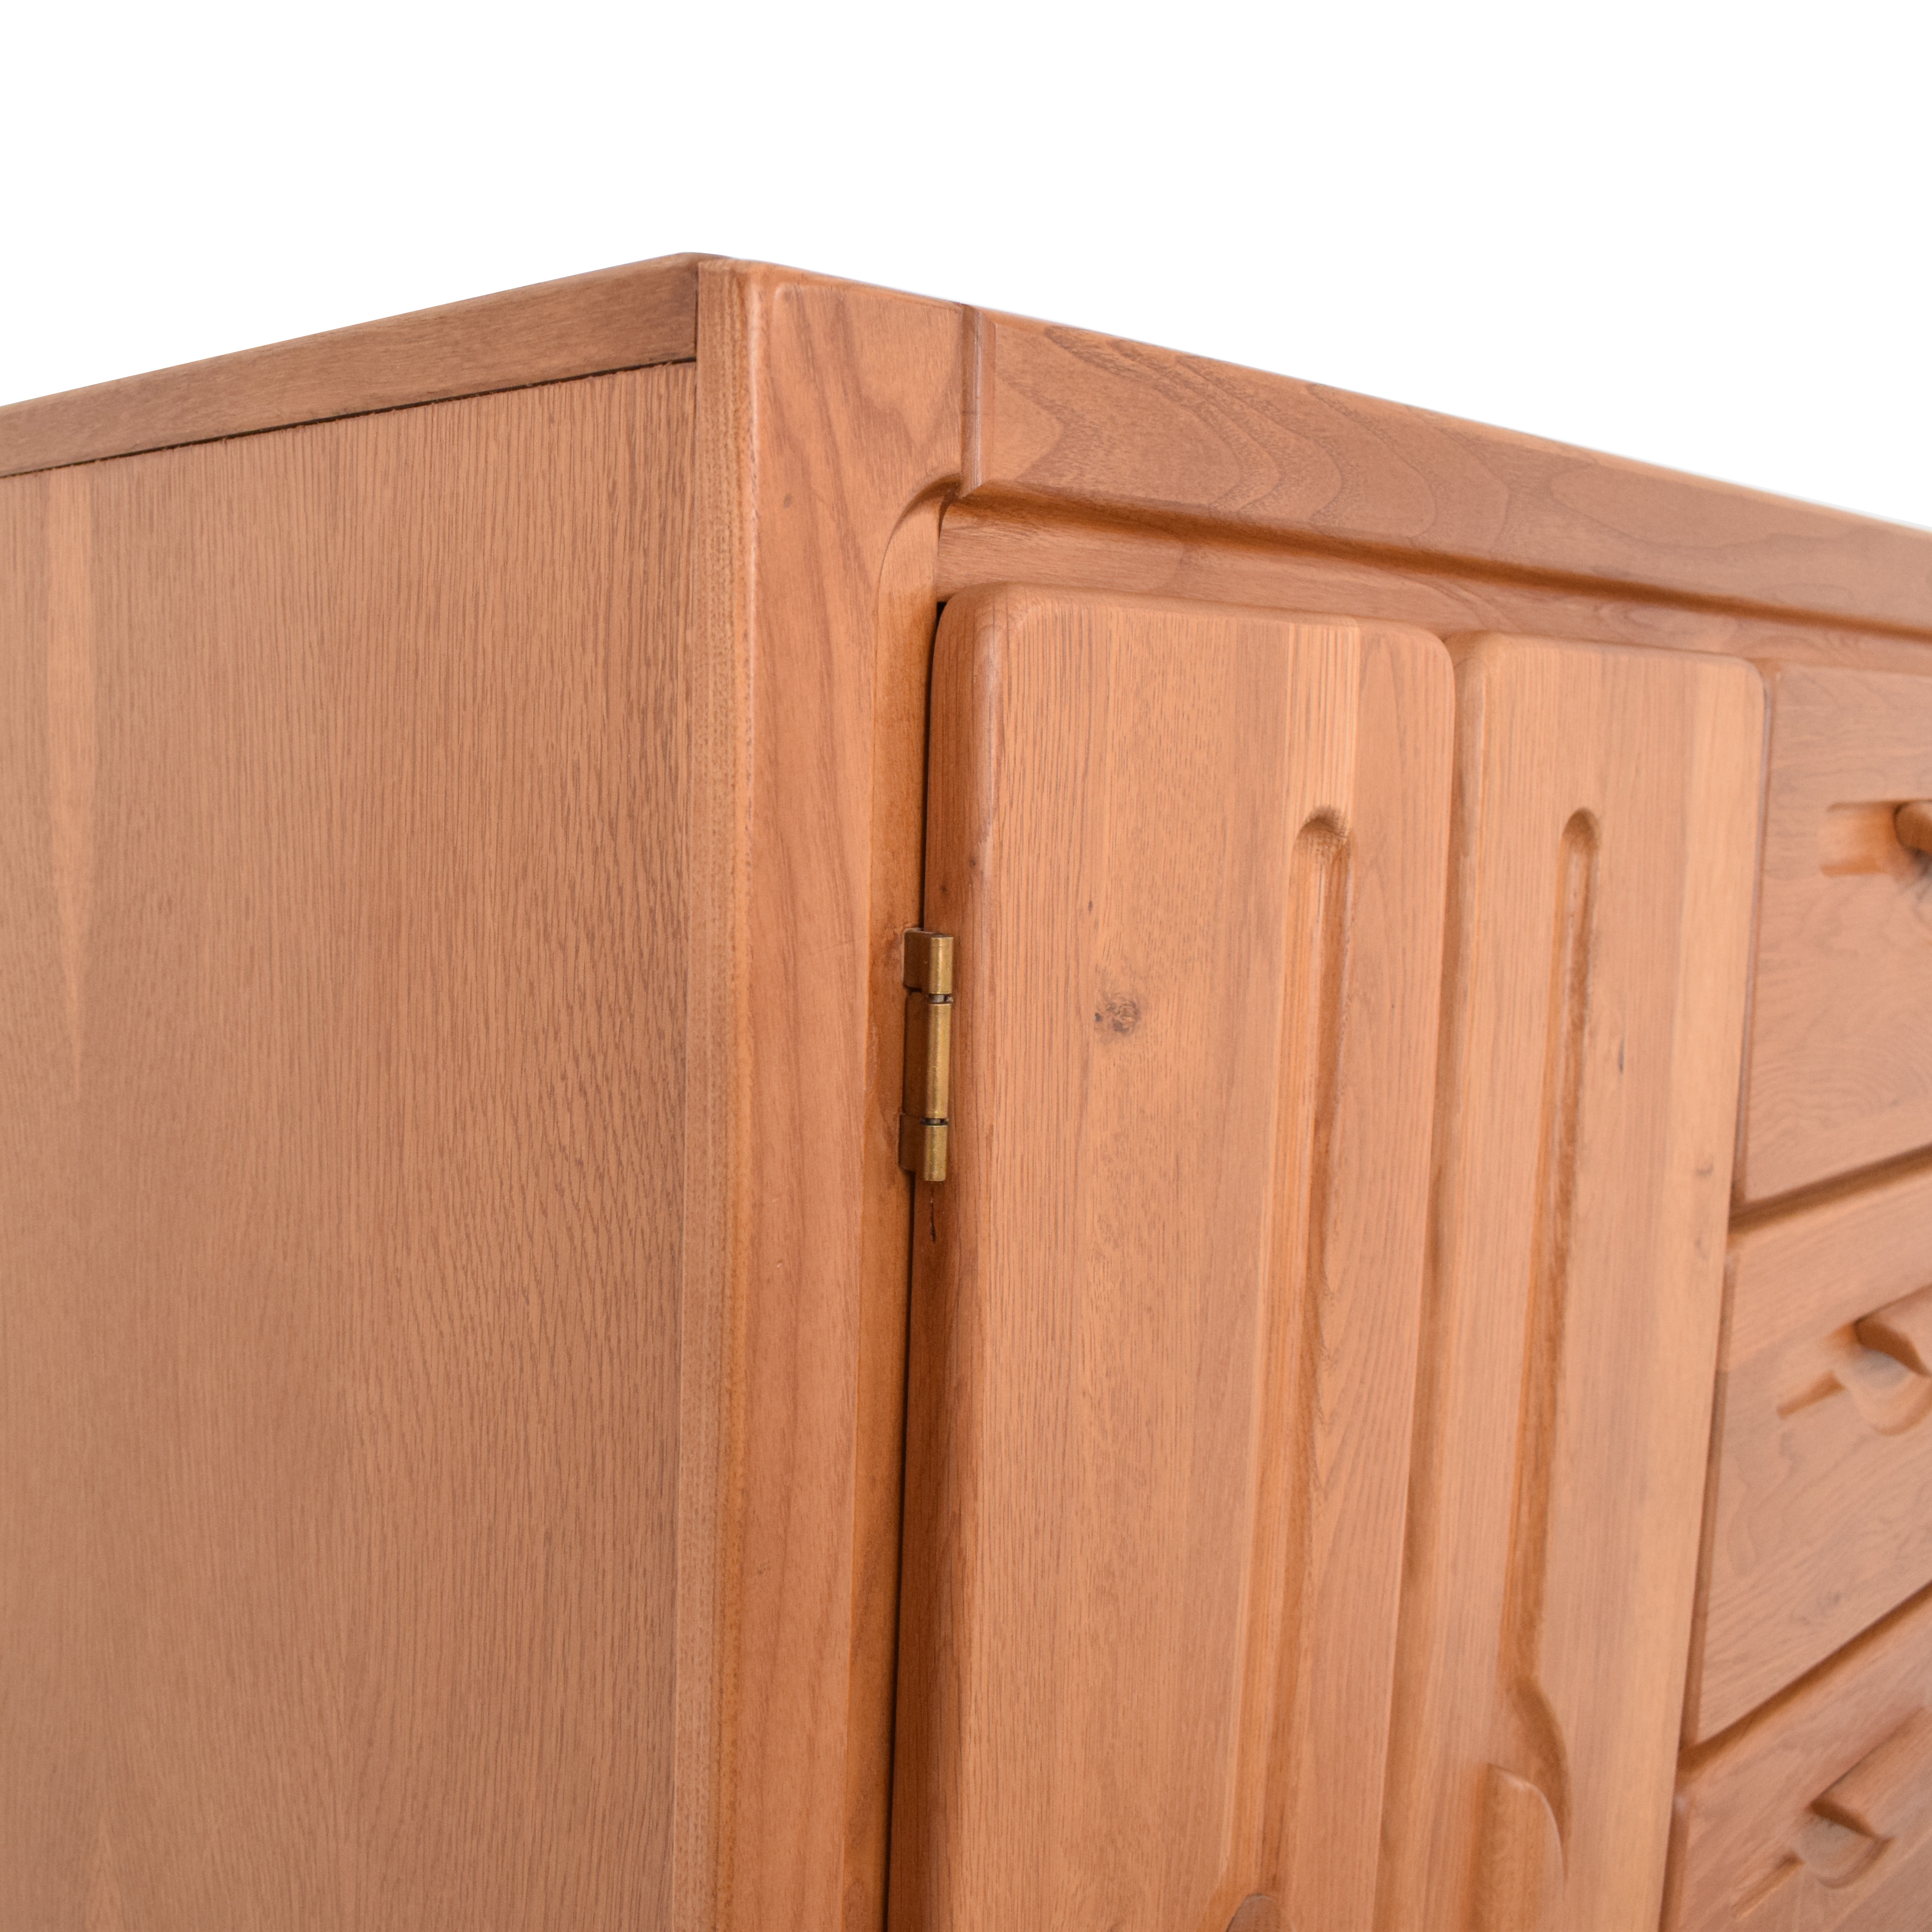 Six Drawer and Cabinet Wardrobe price